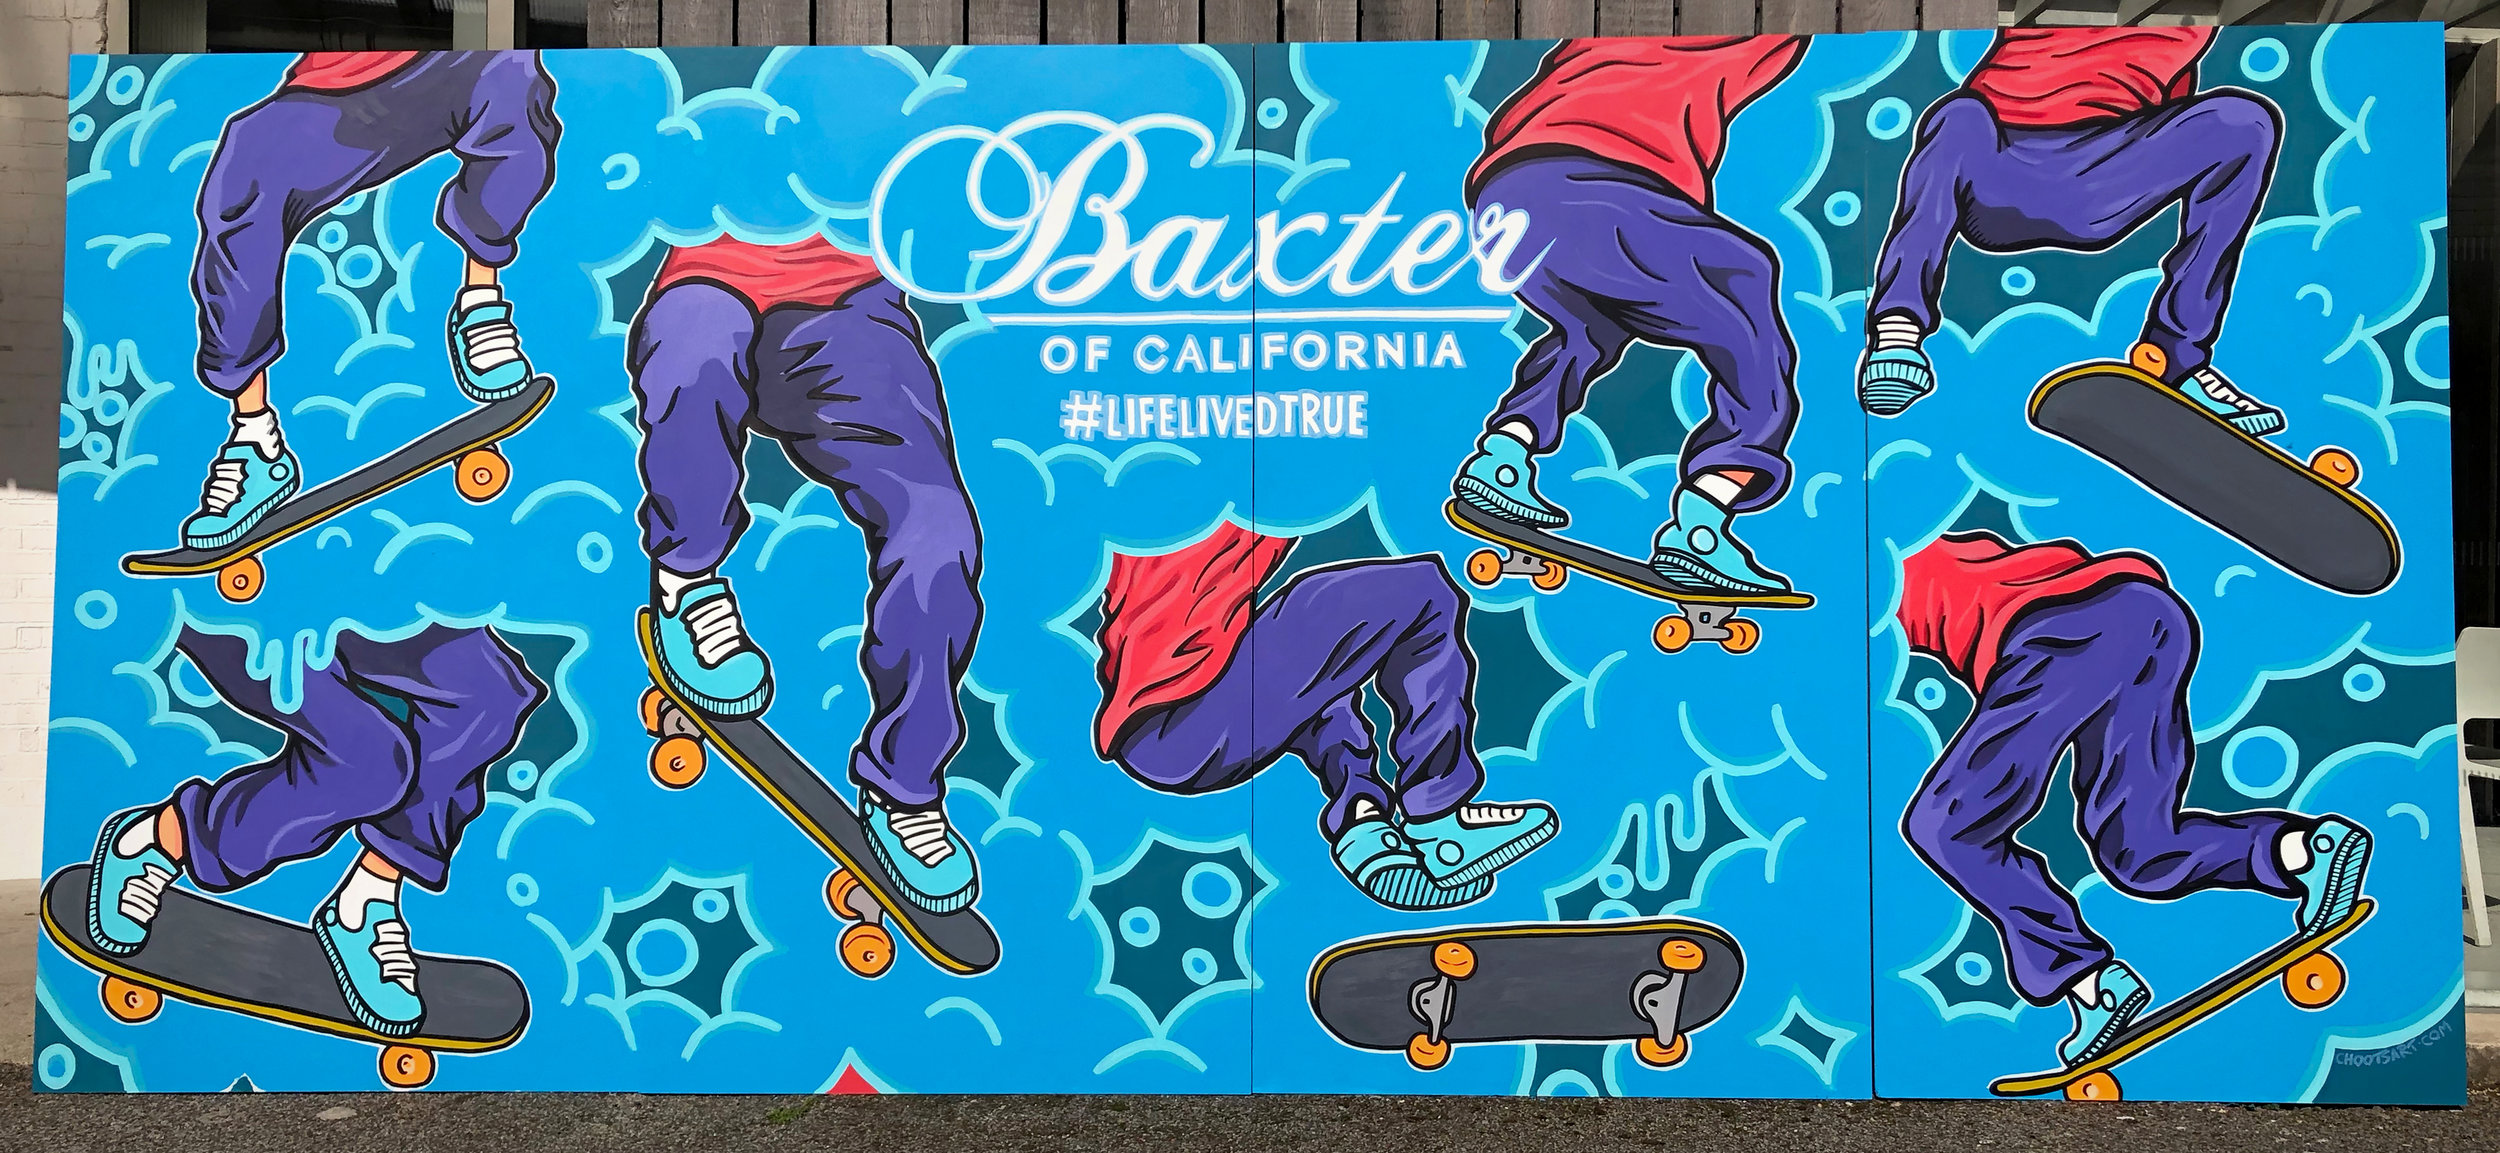 Baxter Of California commission